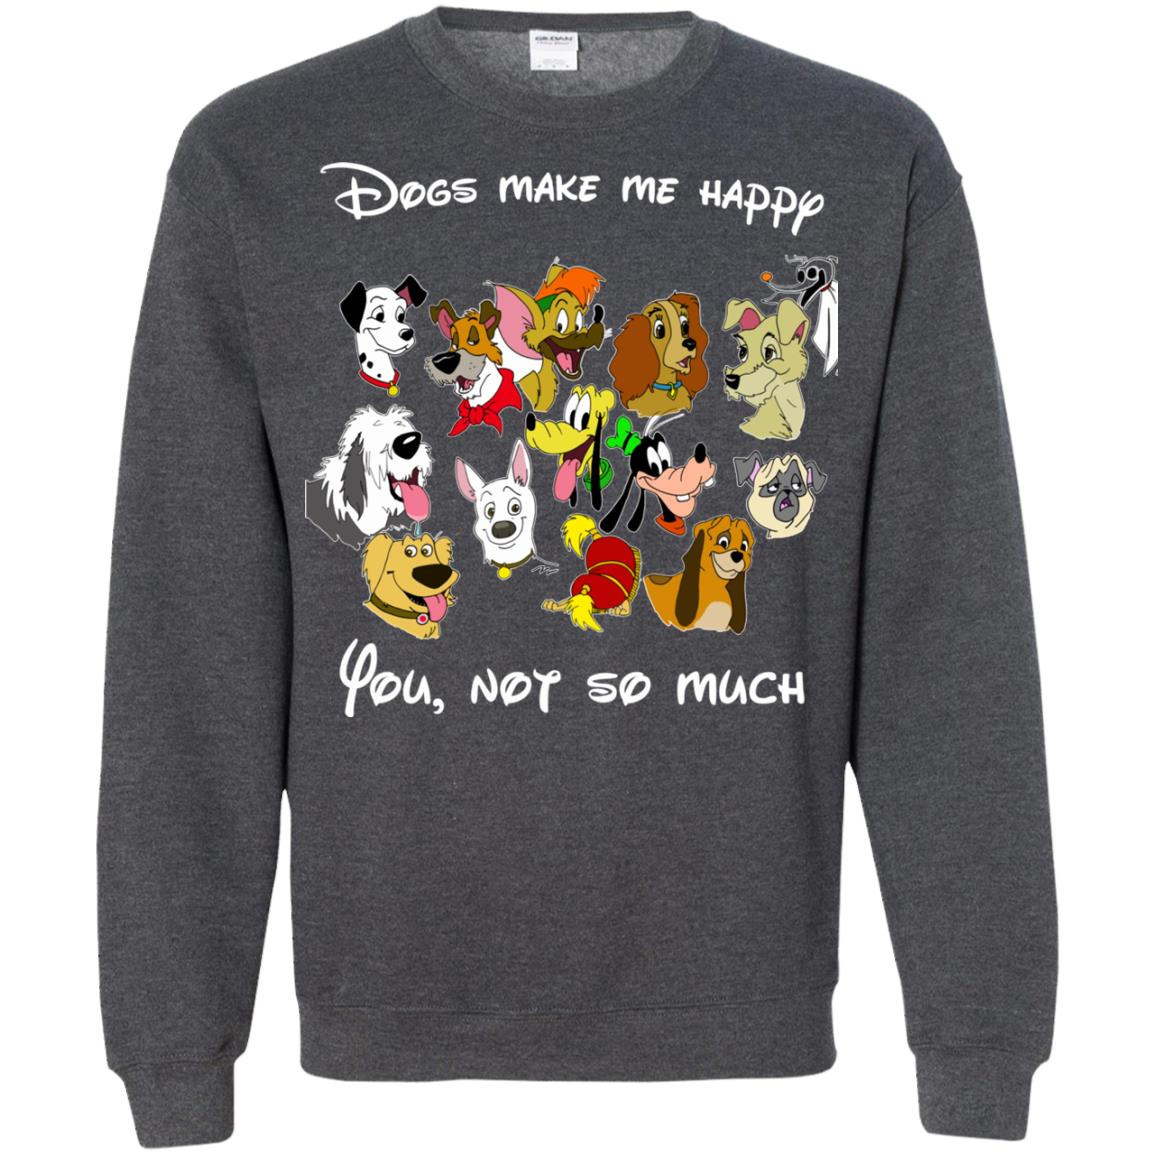 image 899 - Disney Dogs: Dogs make me happy, you no so much shirt, hoodie